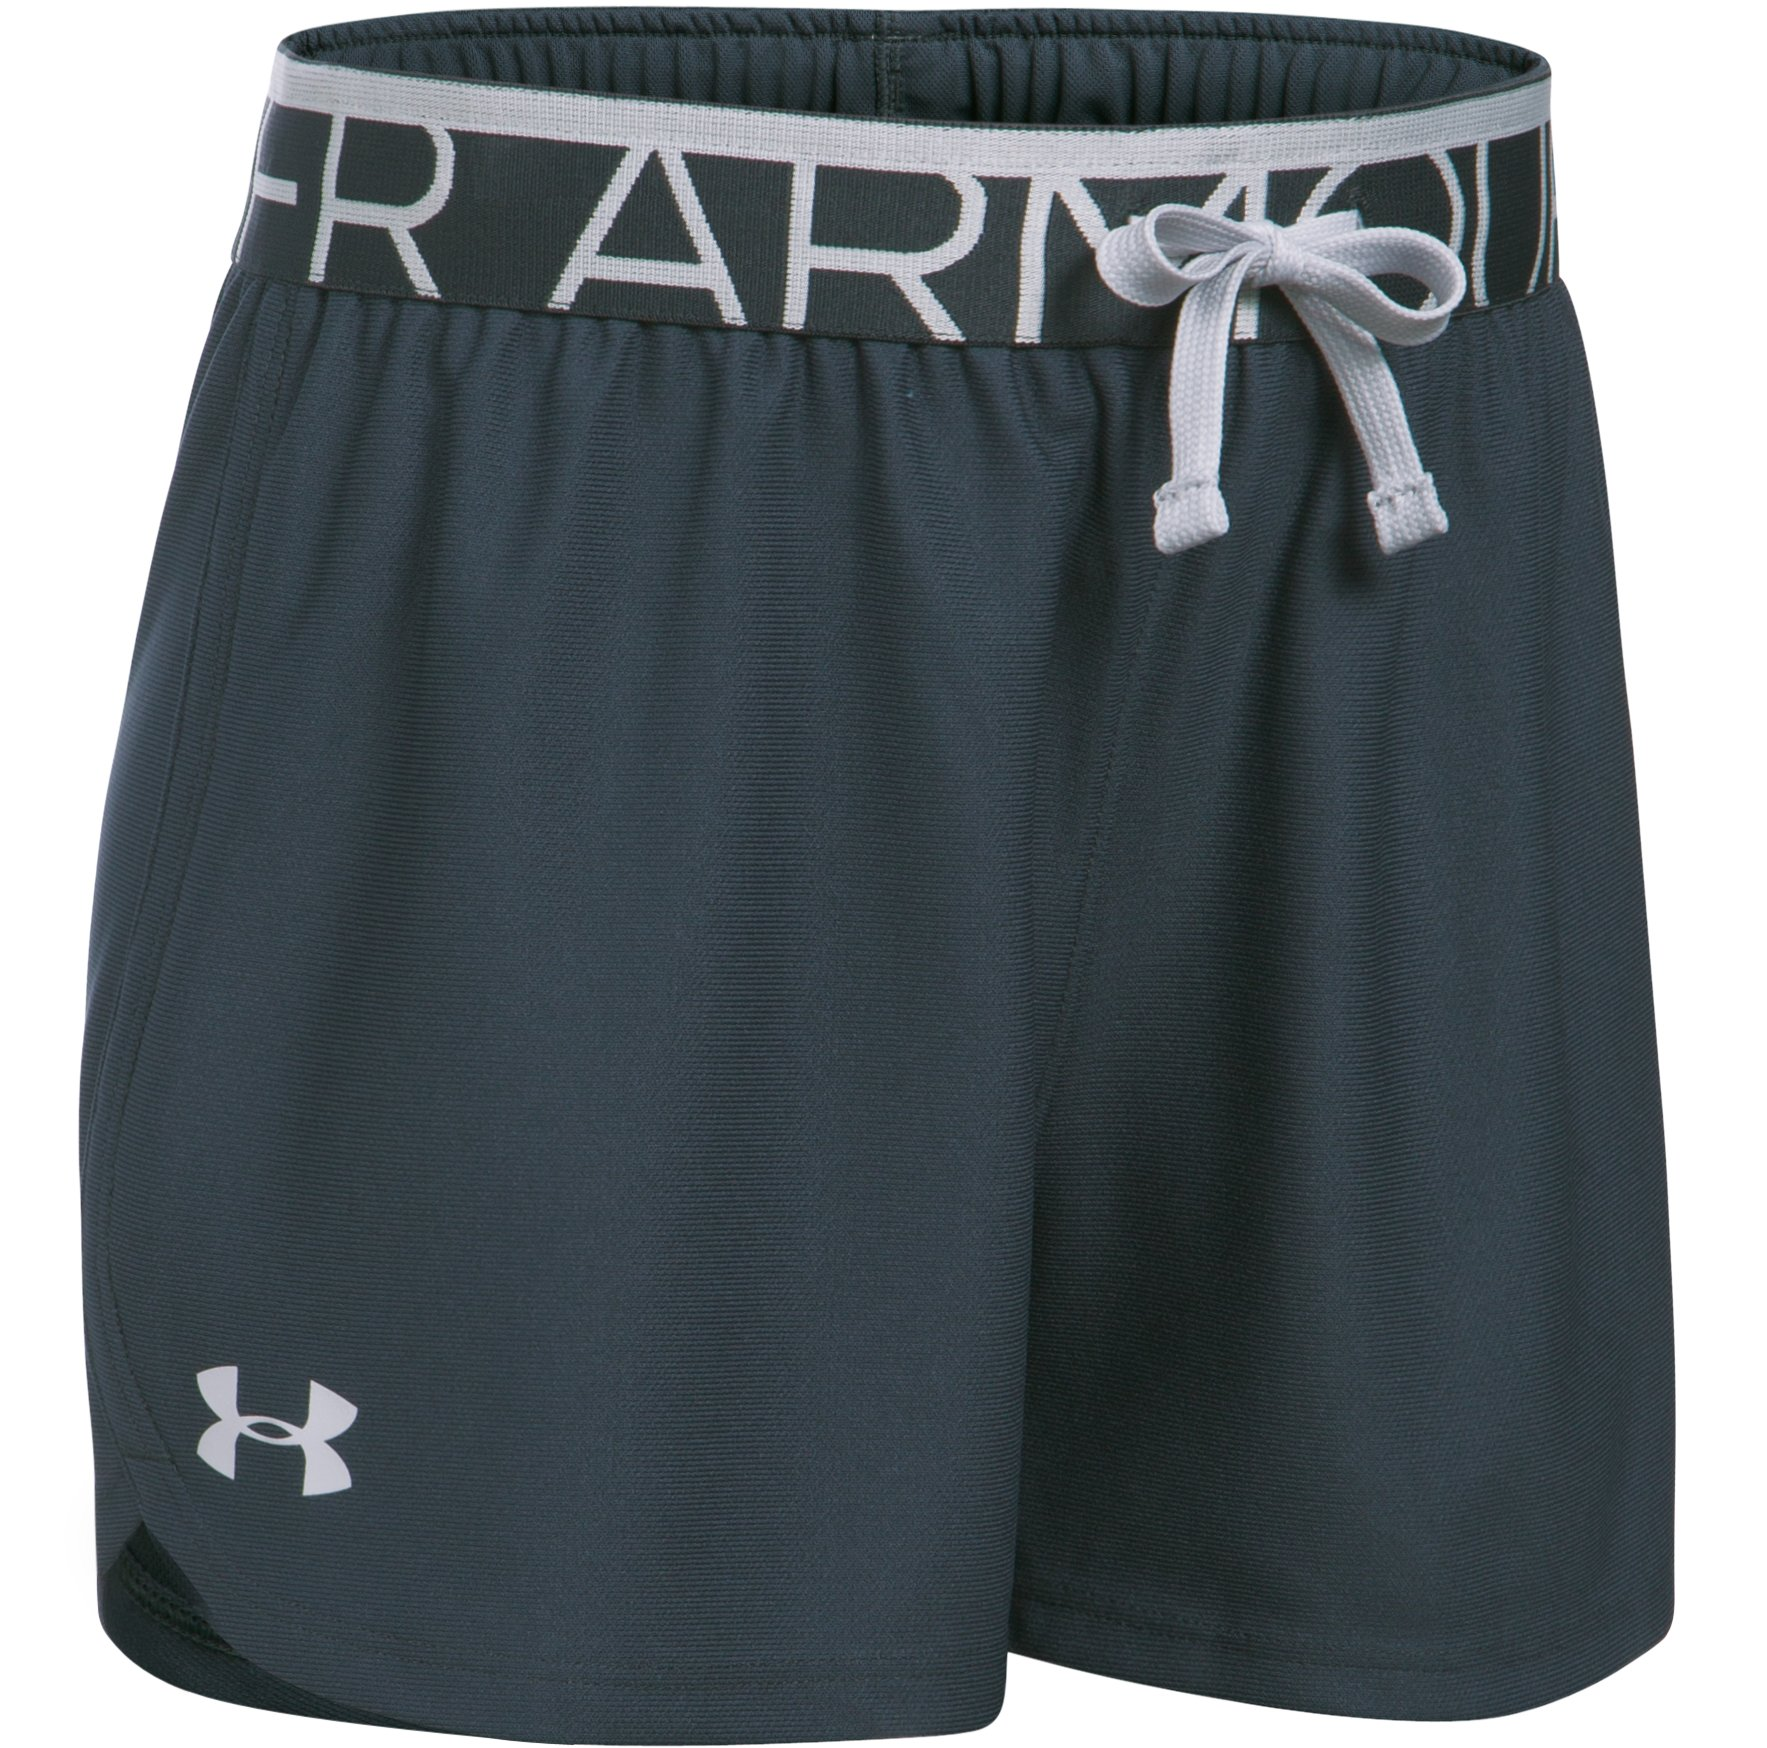 Girls' UA Play Up Shorts, STEALTH GRAY, undefined